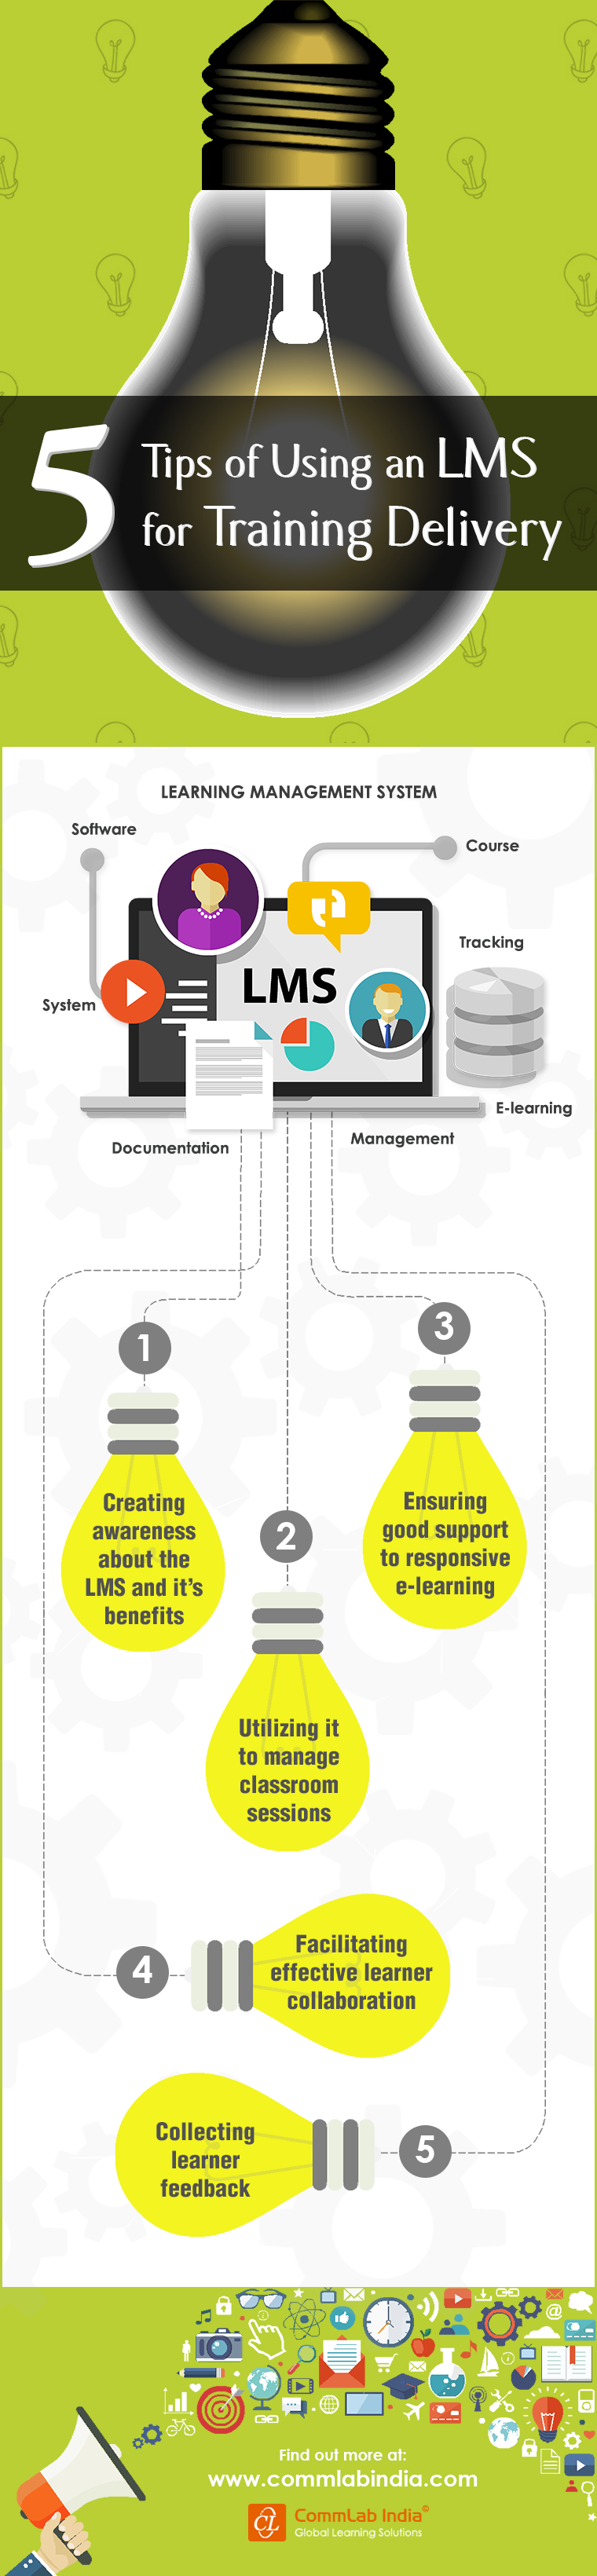 5 Tips on Using an LMS for Training Delivery [Infographic]